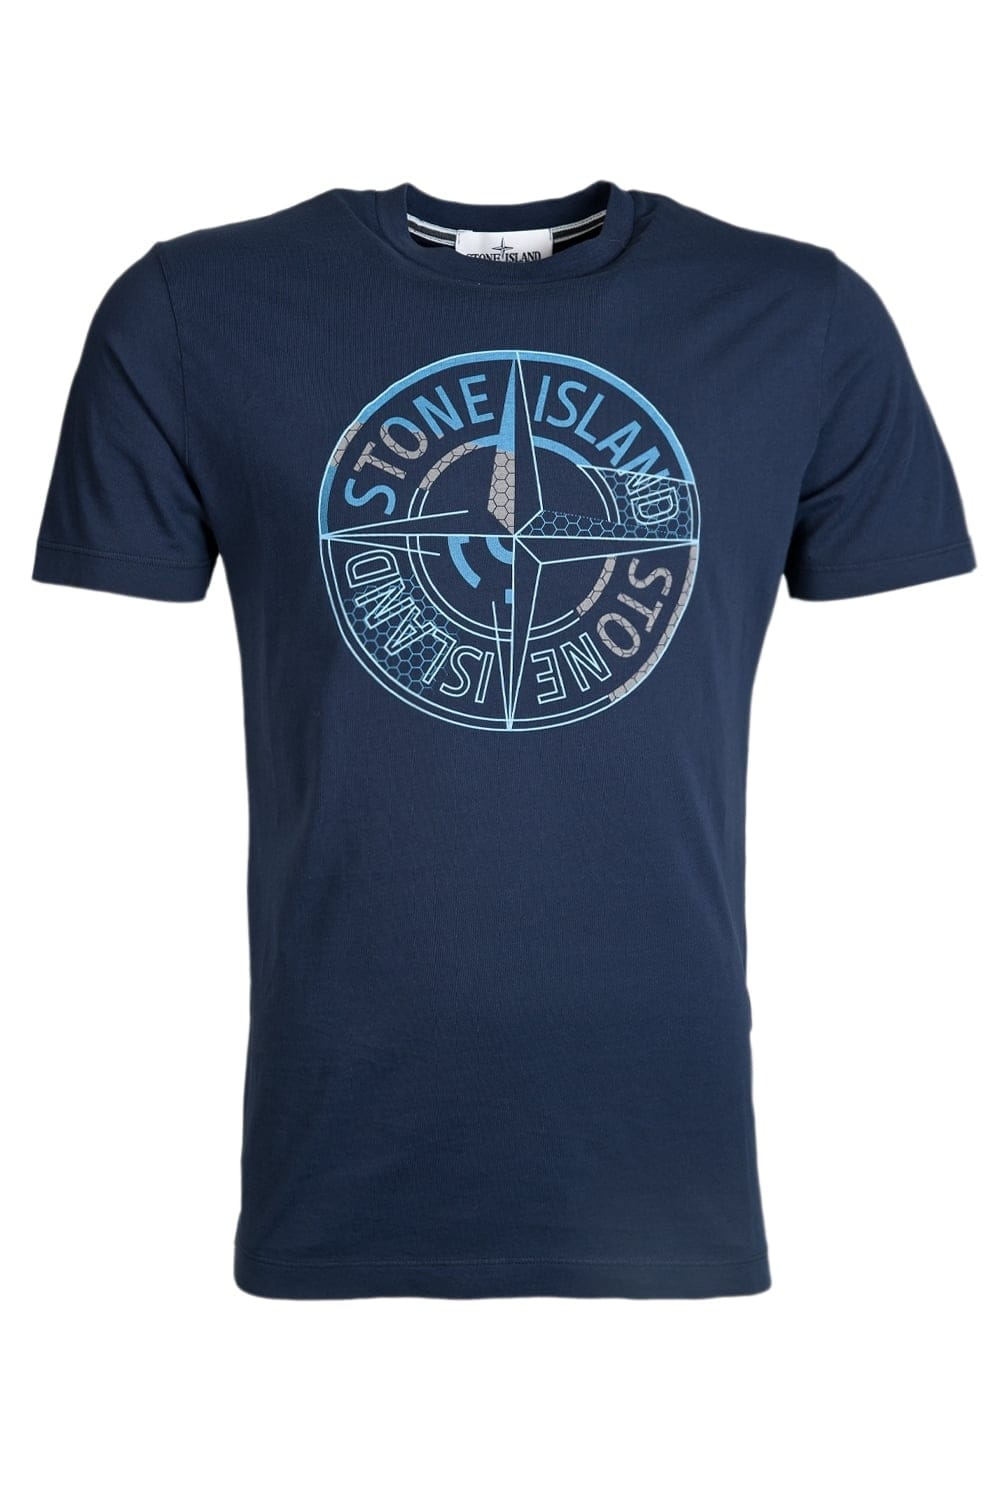 stone island casual t shirt 641520085 clothing from sage